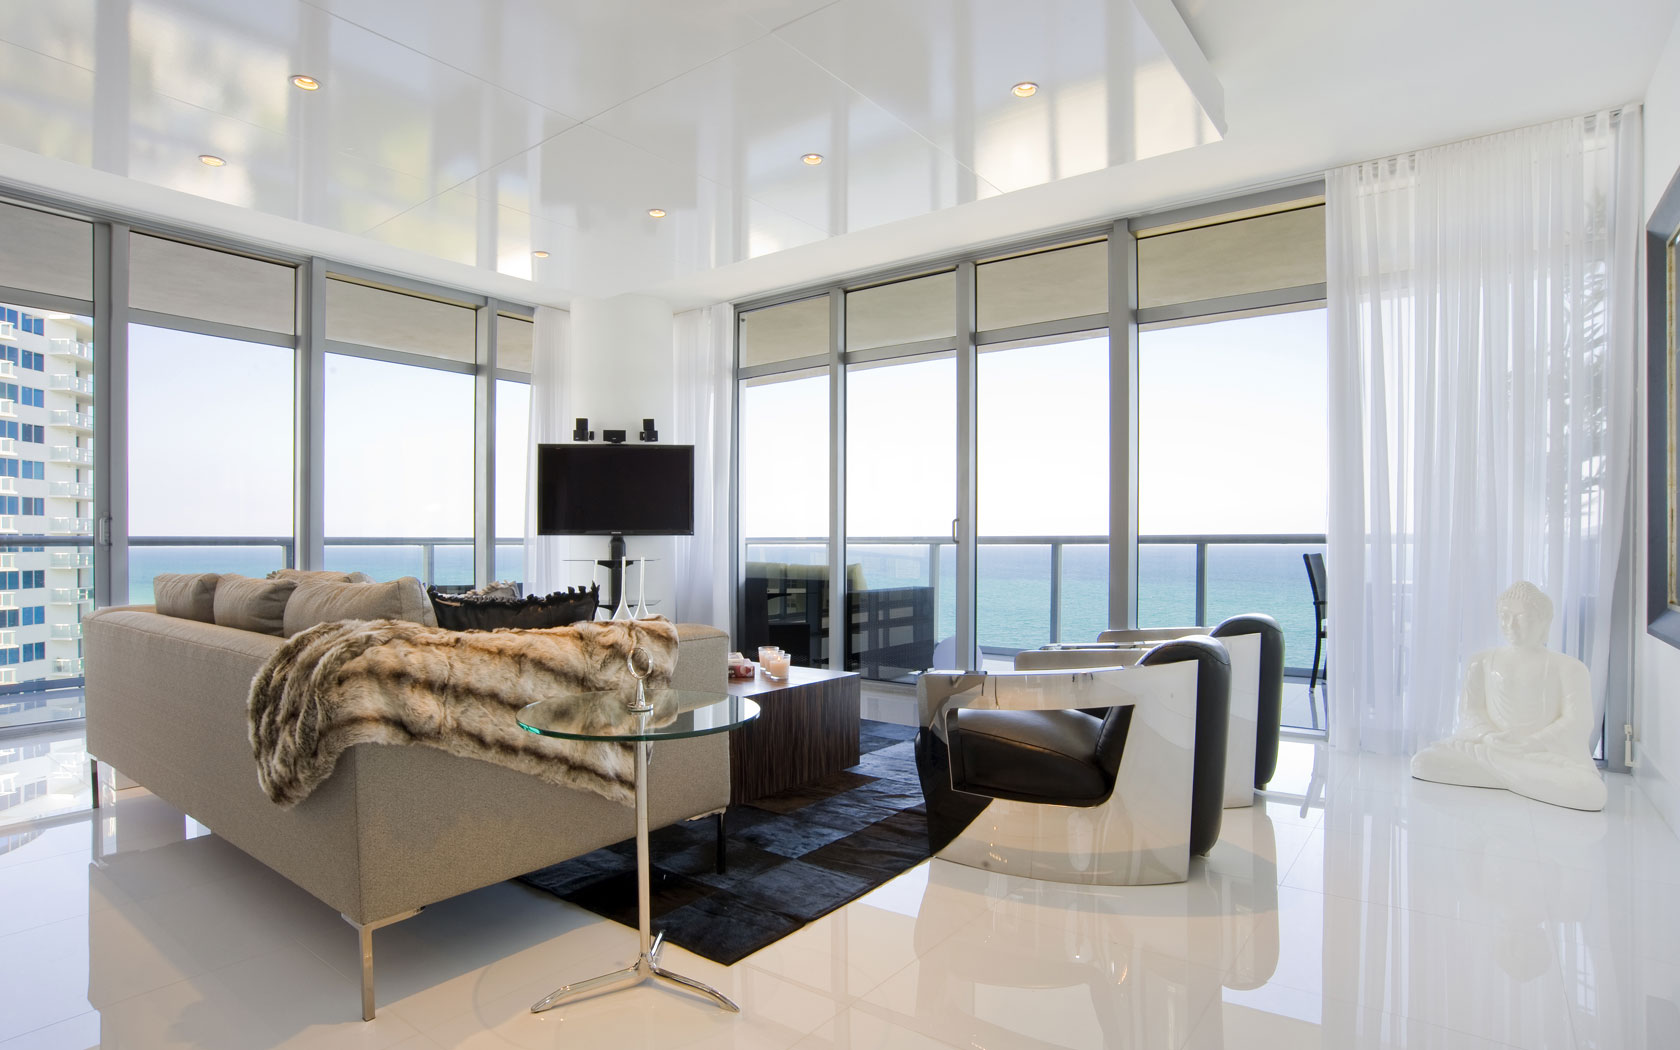 Beach Condo Interior Design Ideas Joy Studio Design